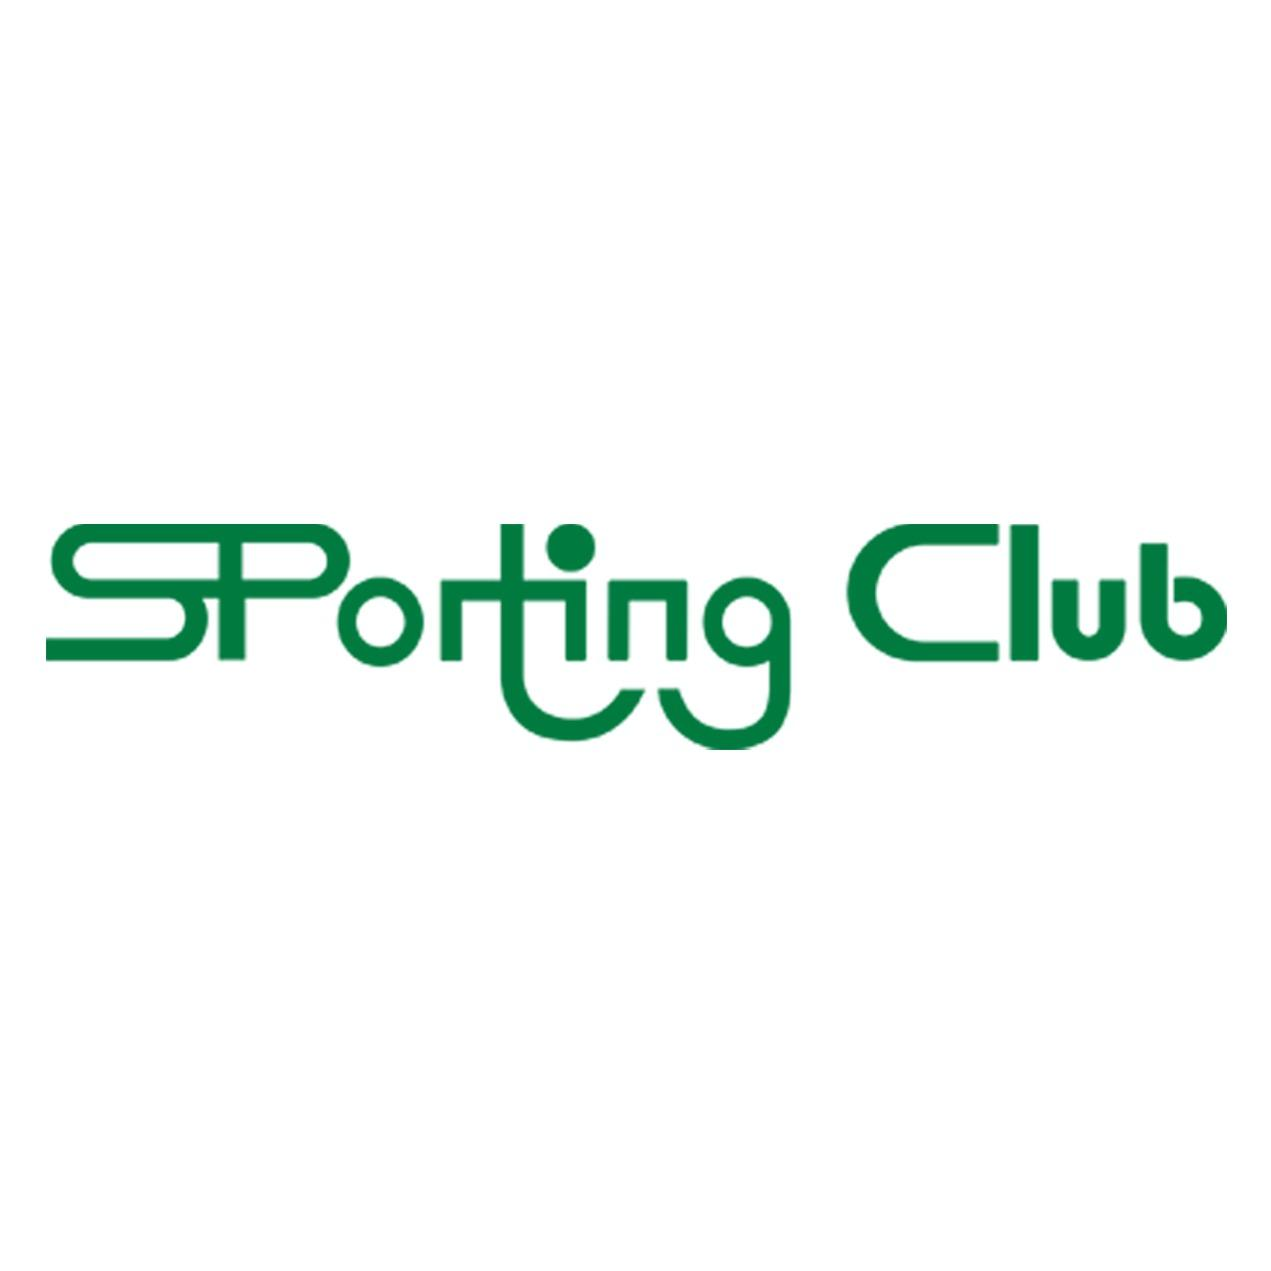 Restaurant Sporting Club